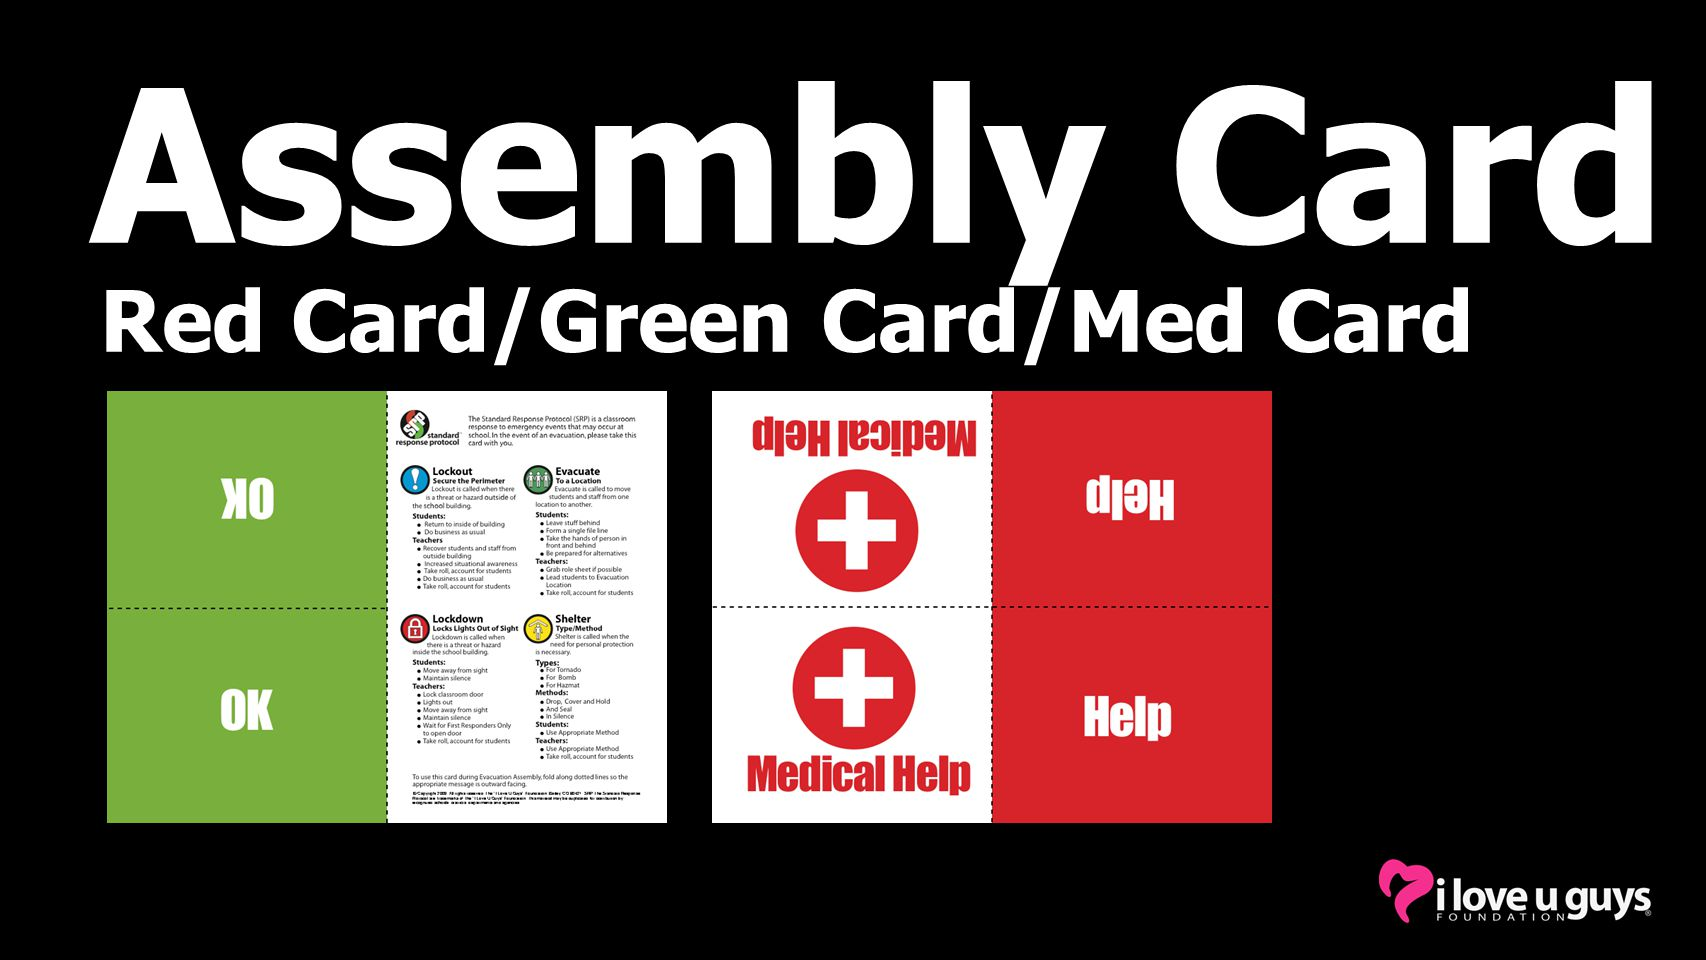 Assembly Card Red Card/Green Card/Med Card